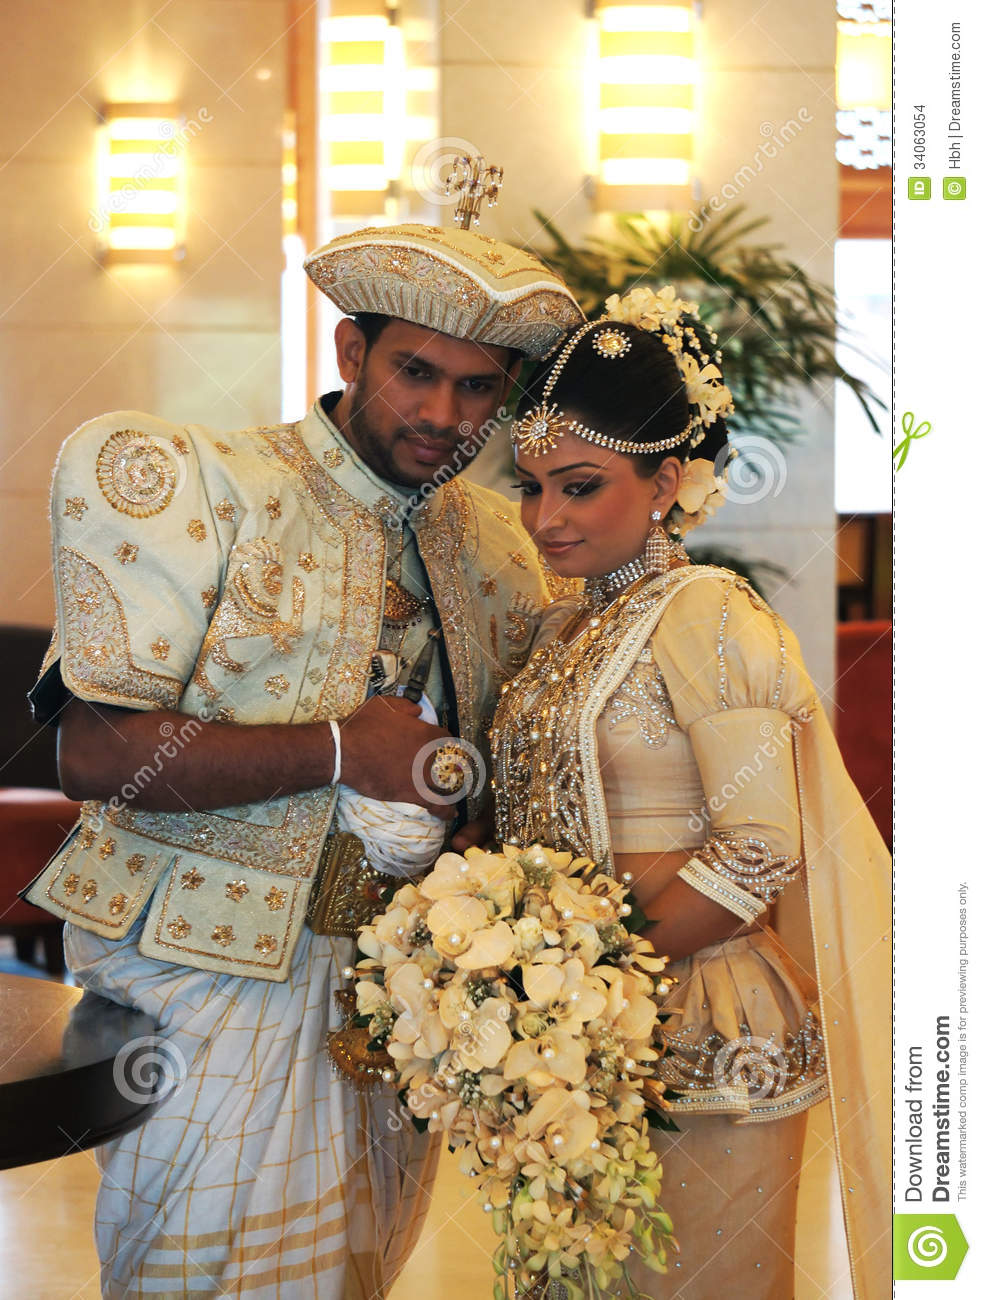 Image Result For Bride Groom Dresses In Sri Lanka